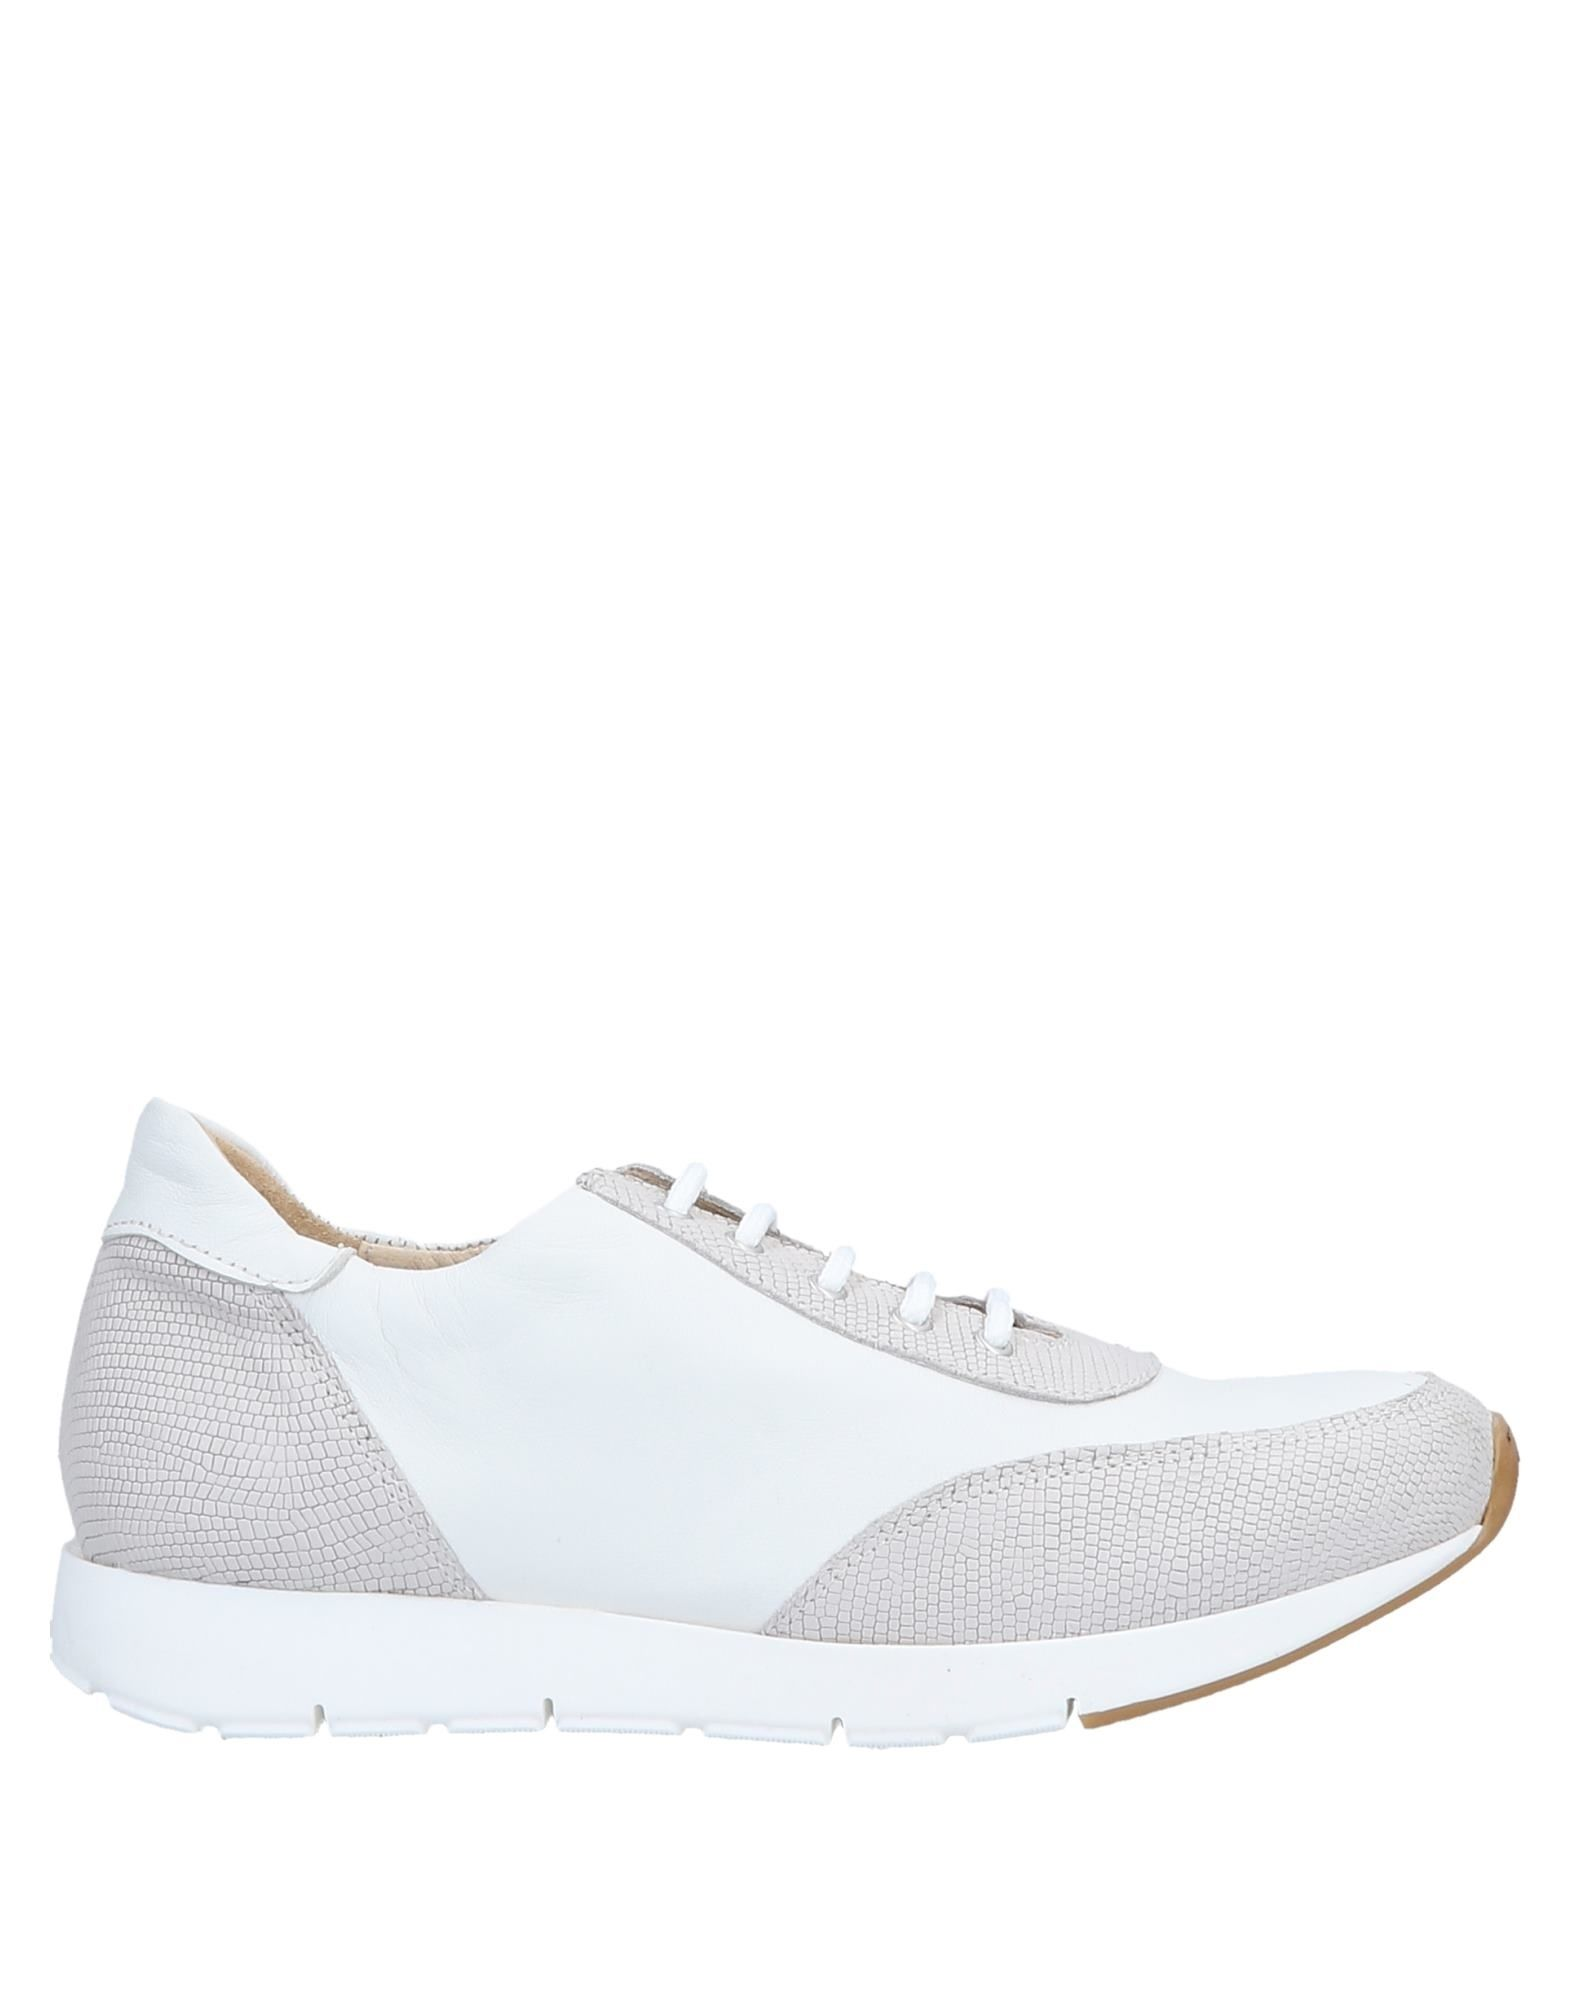 Tsd12 on Sneakers - Women Tsd12 Sneakers online on Tsd12  Canada - 11567414DK 06146e